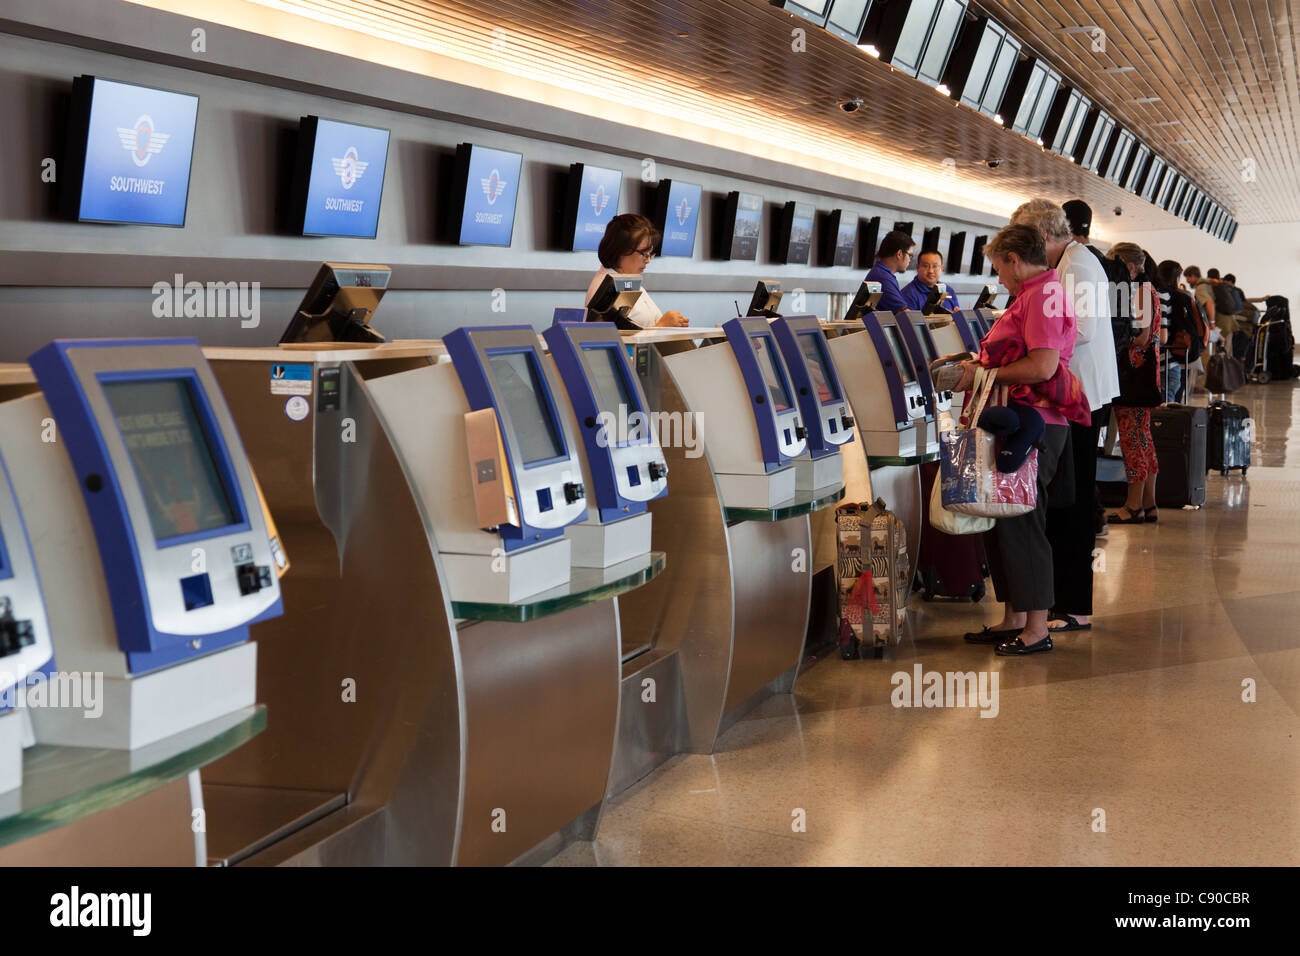 People checking in to their flights using kiosks at the self-serve ticket counter in San Jose Airport in California - Stock Image